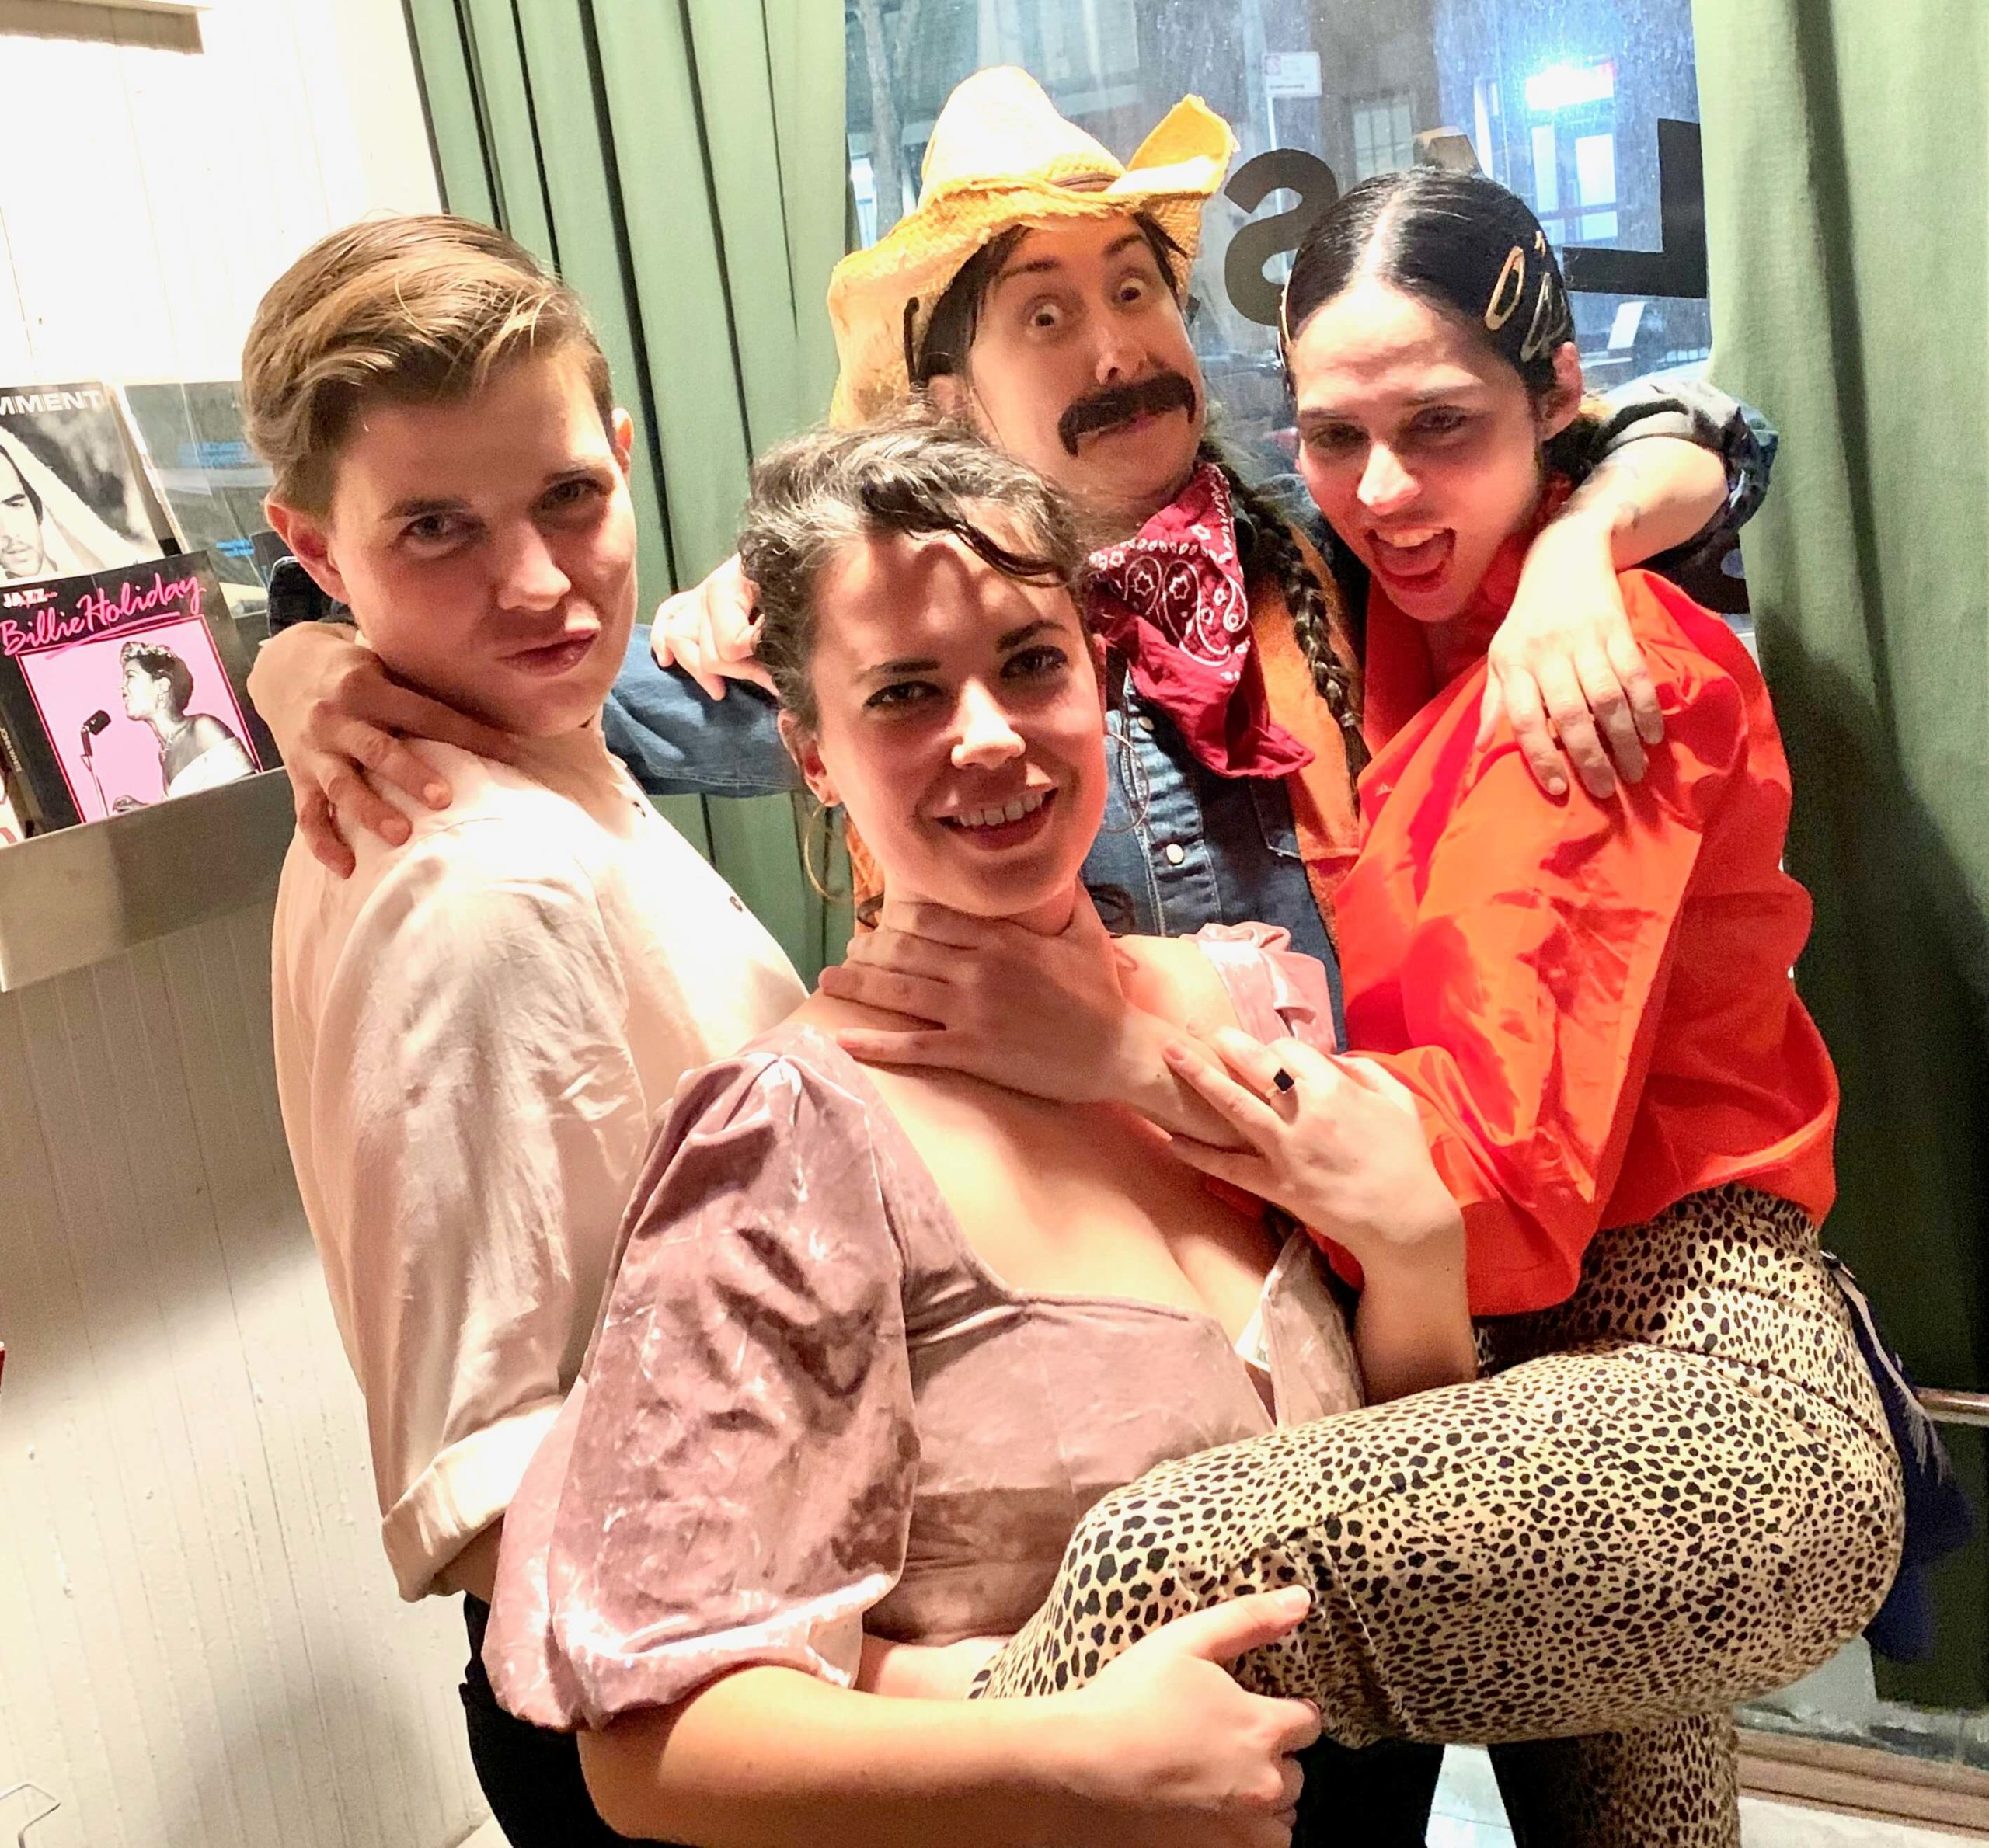 the three wmn founders with drag king performer Nacho posing at a window